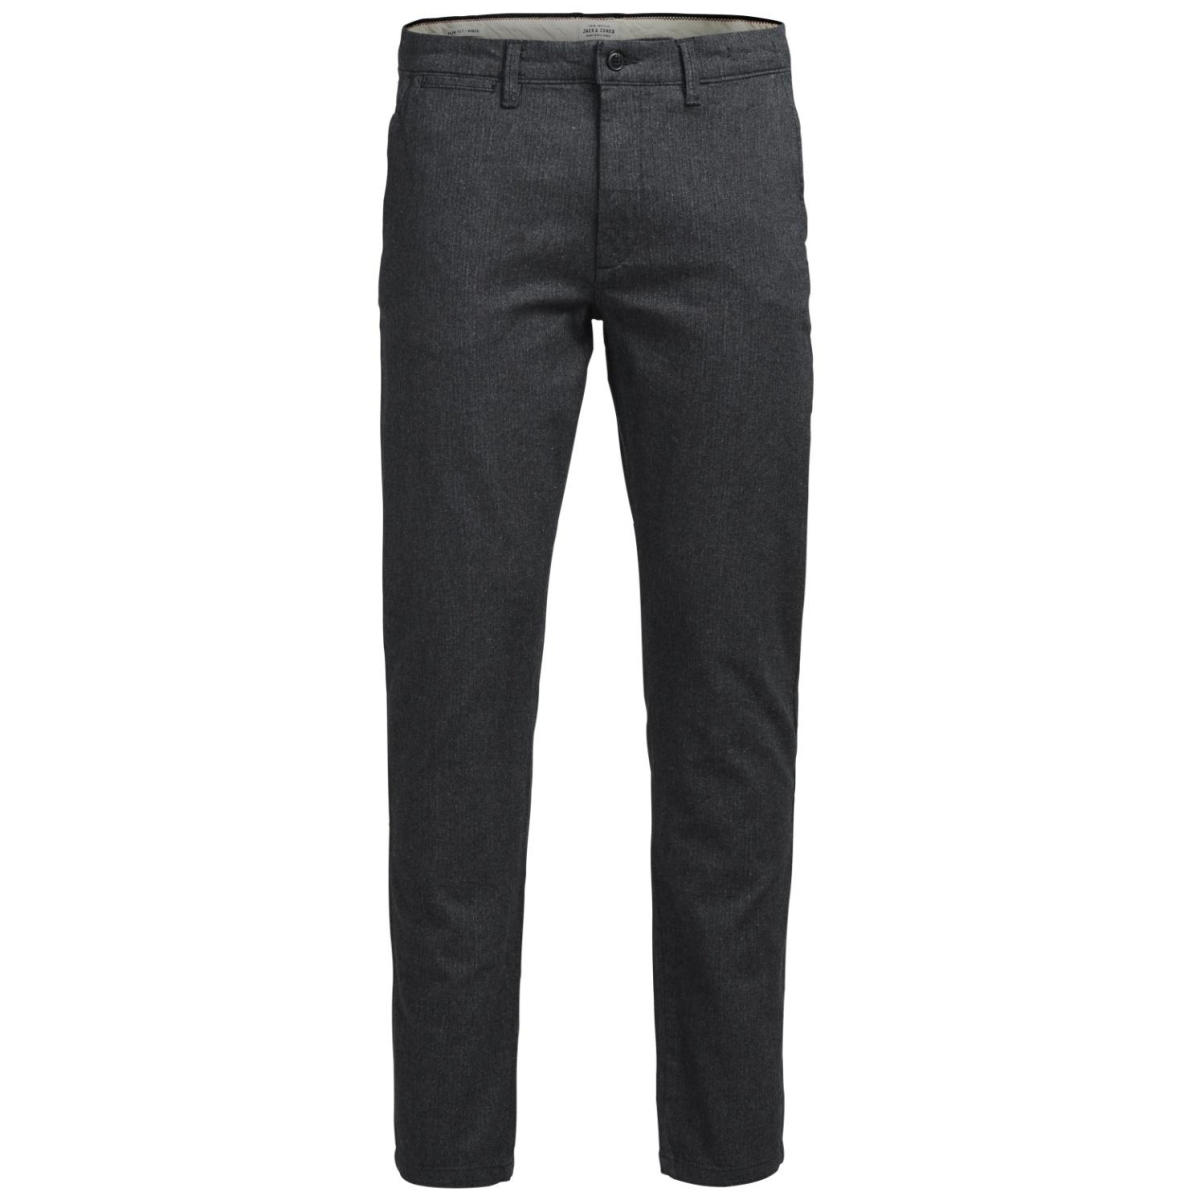 jjimarco jjcharles akm 269 dark gre 12125604 jack & jones broek dark grey